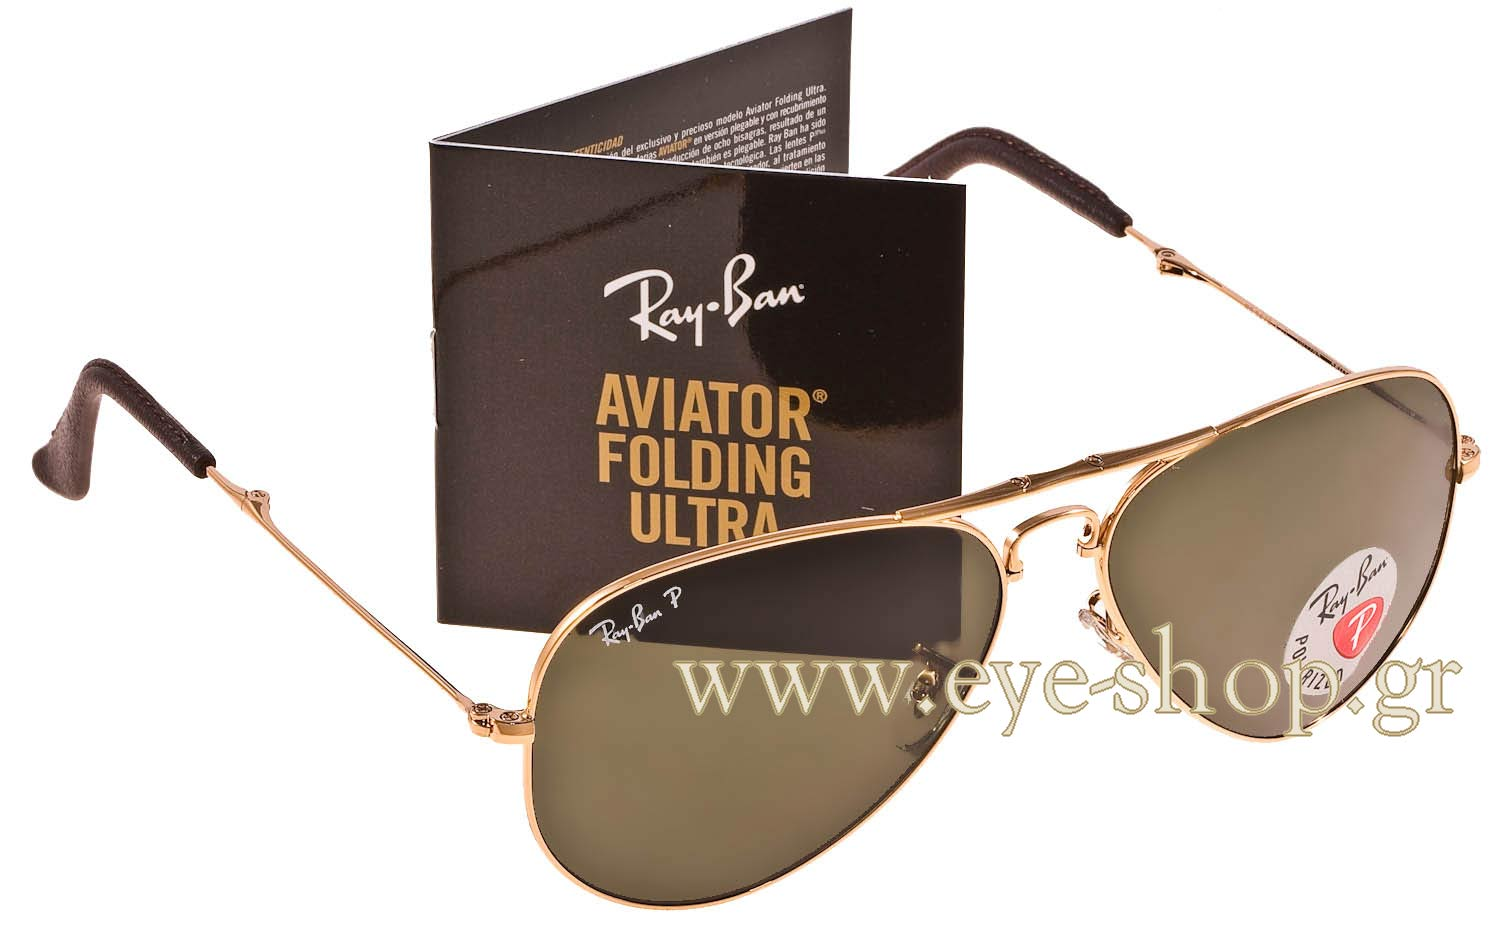 ray ban limited edition aviator metal sunglasses  aviator , color gold brown metal , lenses g15 krystal polarized glass , polarized. extreme magnification eye shop. sunglasses rayban